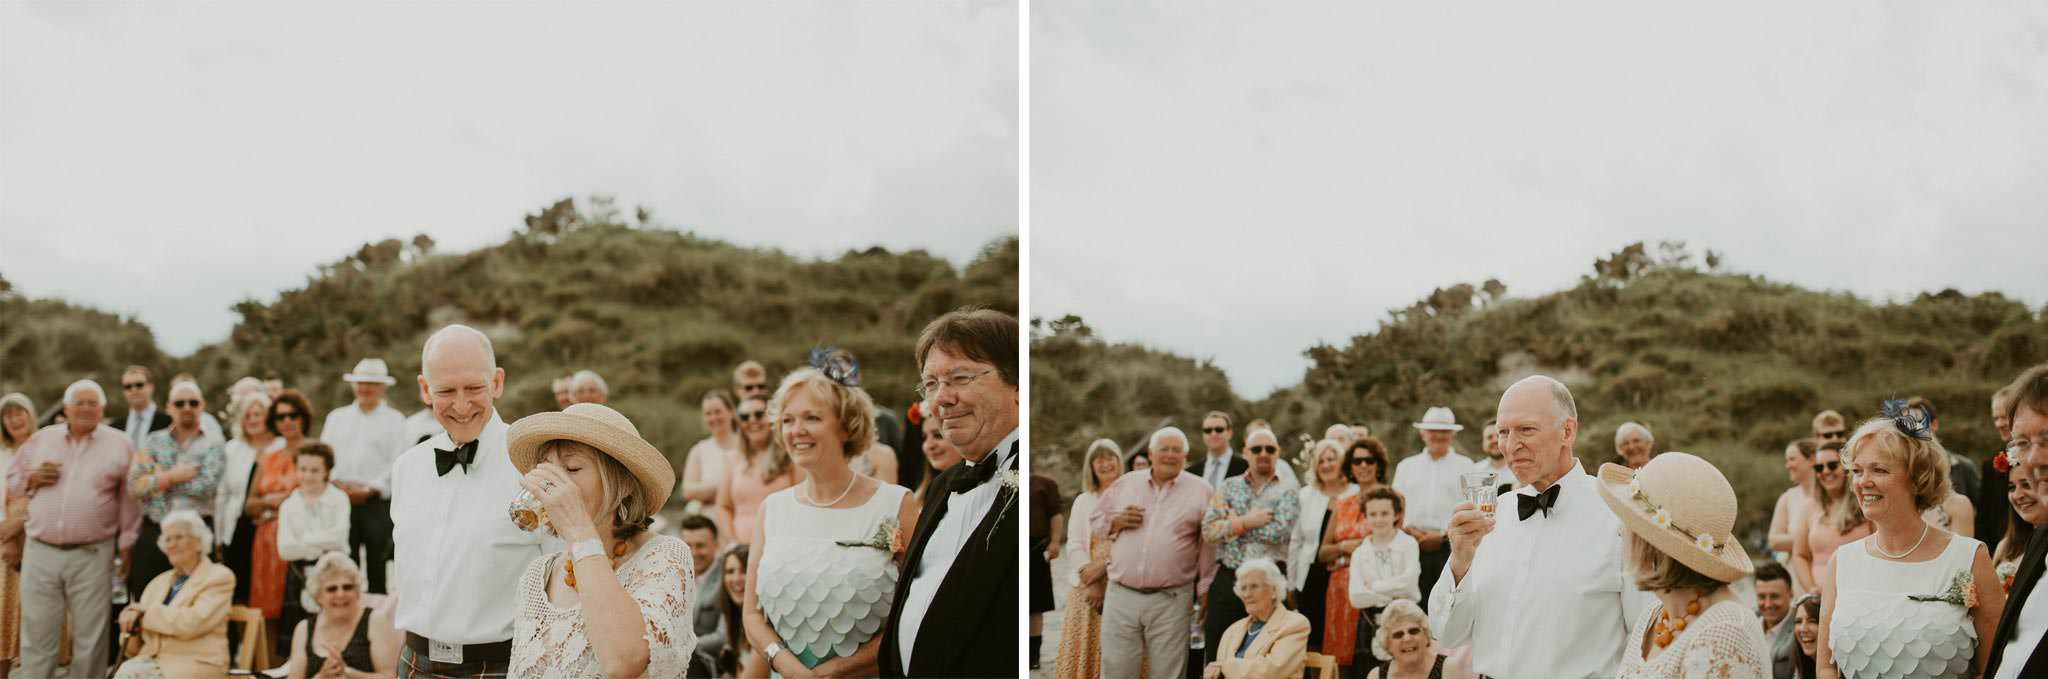 wedding-photographer-arisaig-049